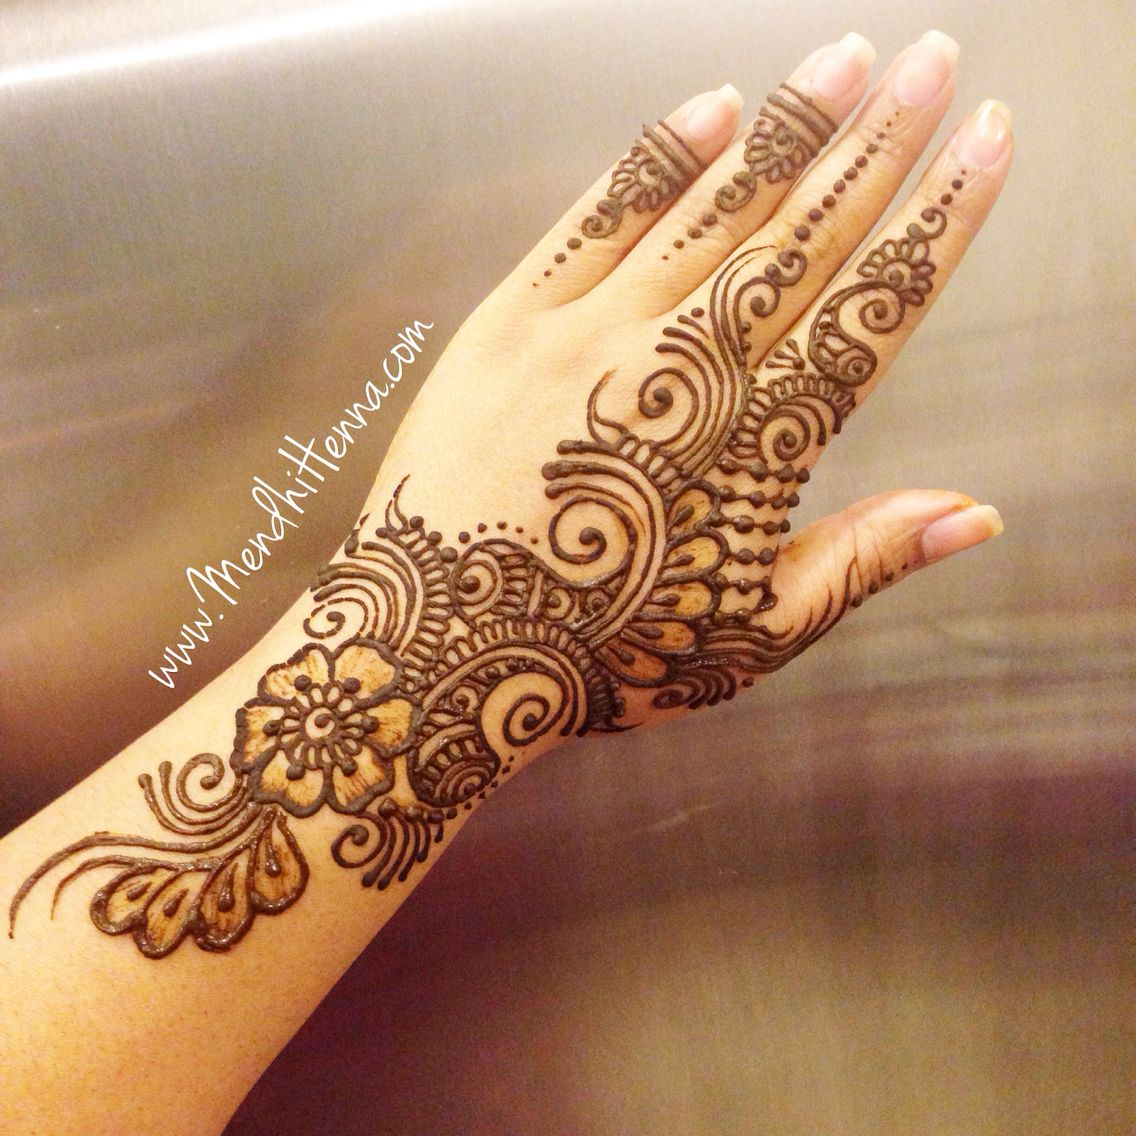 Mehndi Patterns What Are They : Best mehendi images on pinterest henna patterns